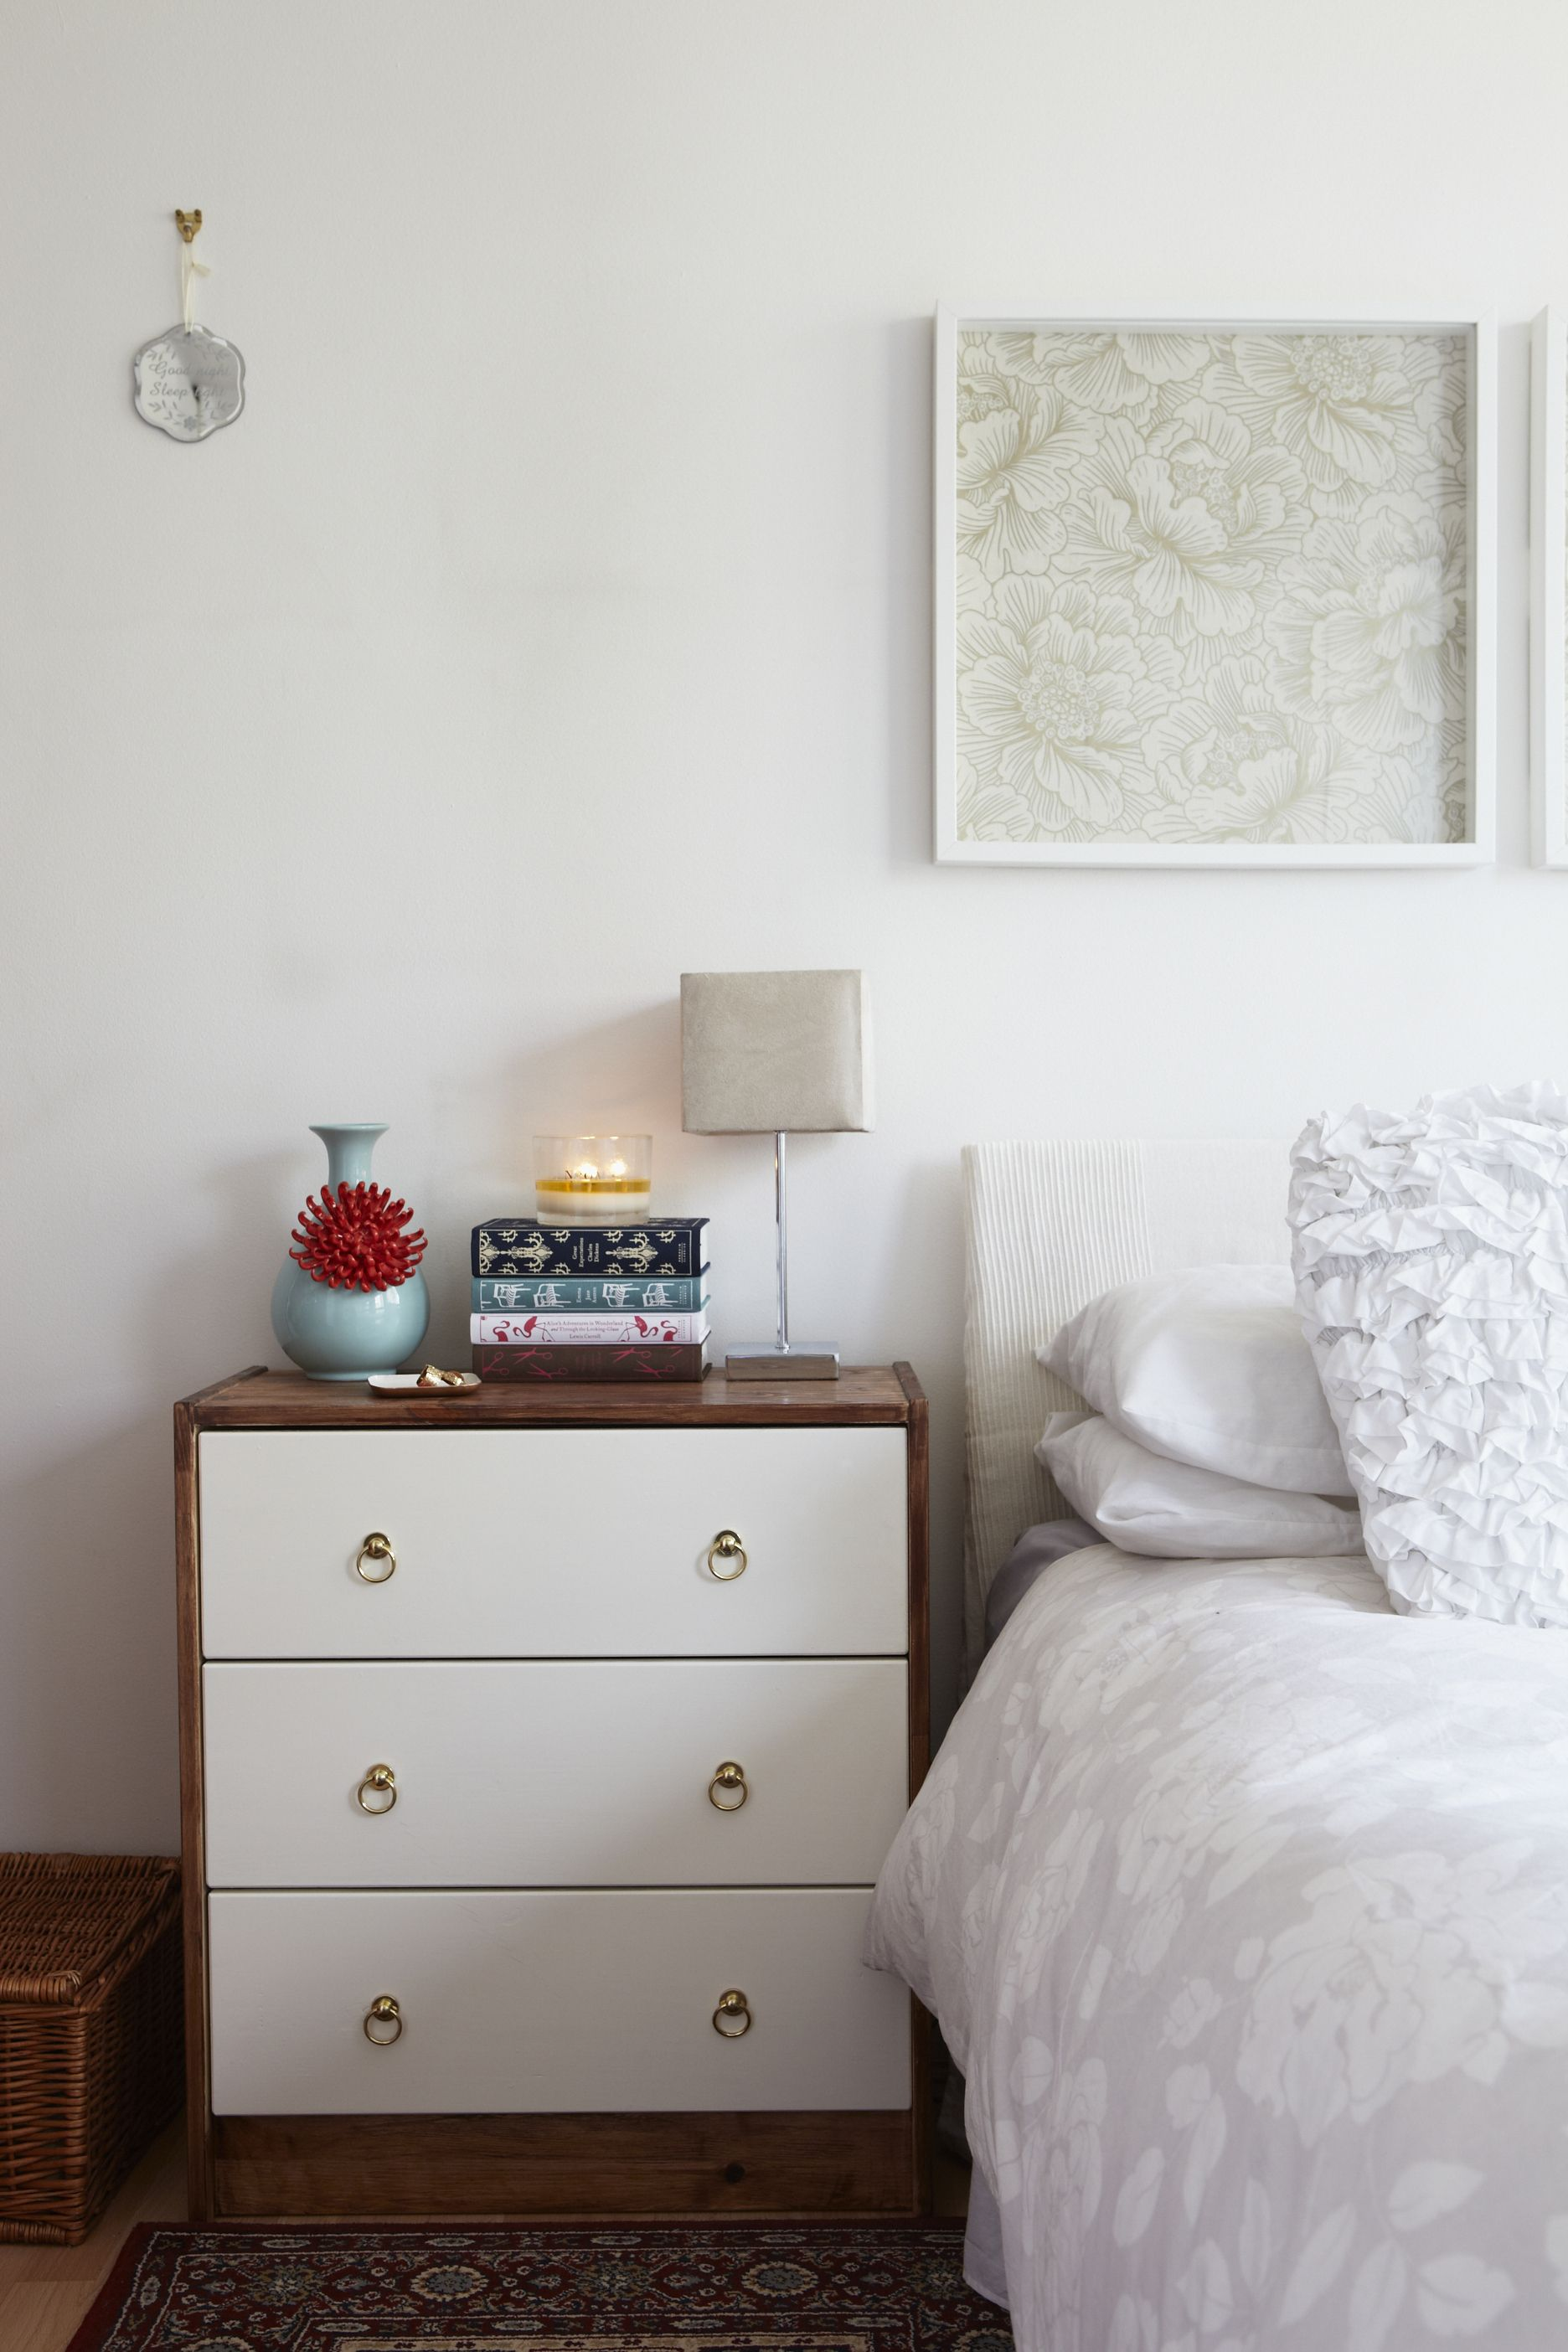 Find This Pin And More On The Everygirl DECORATES By Theeverygirl Ikea Hack